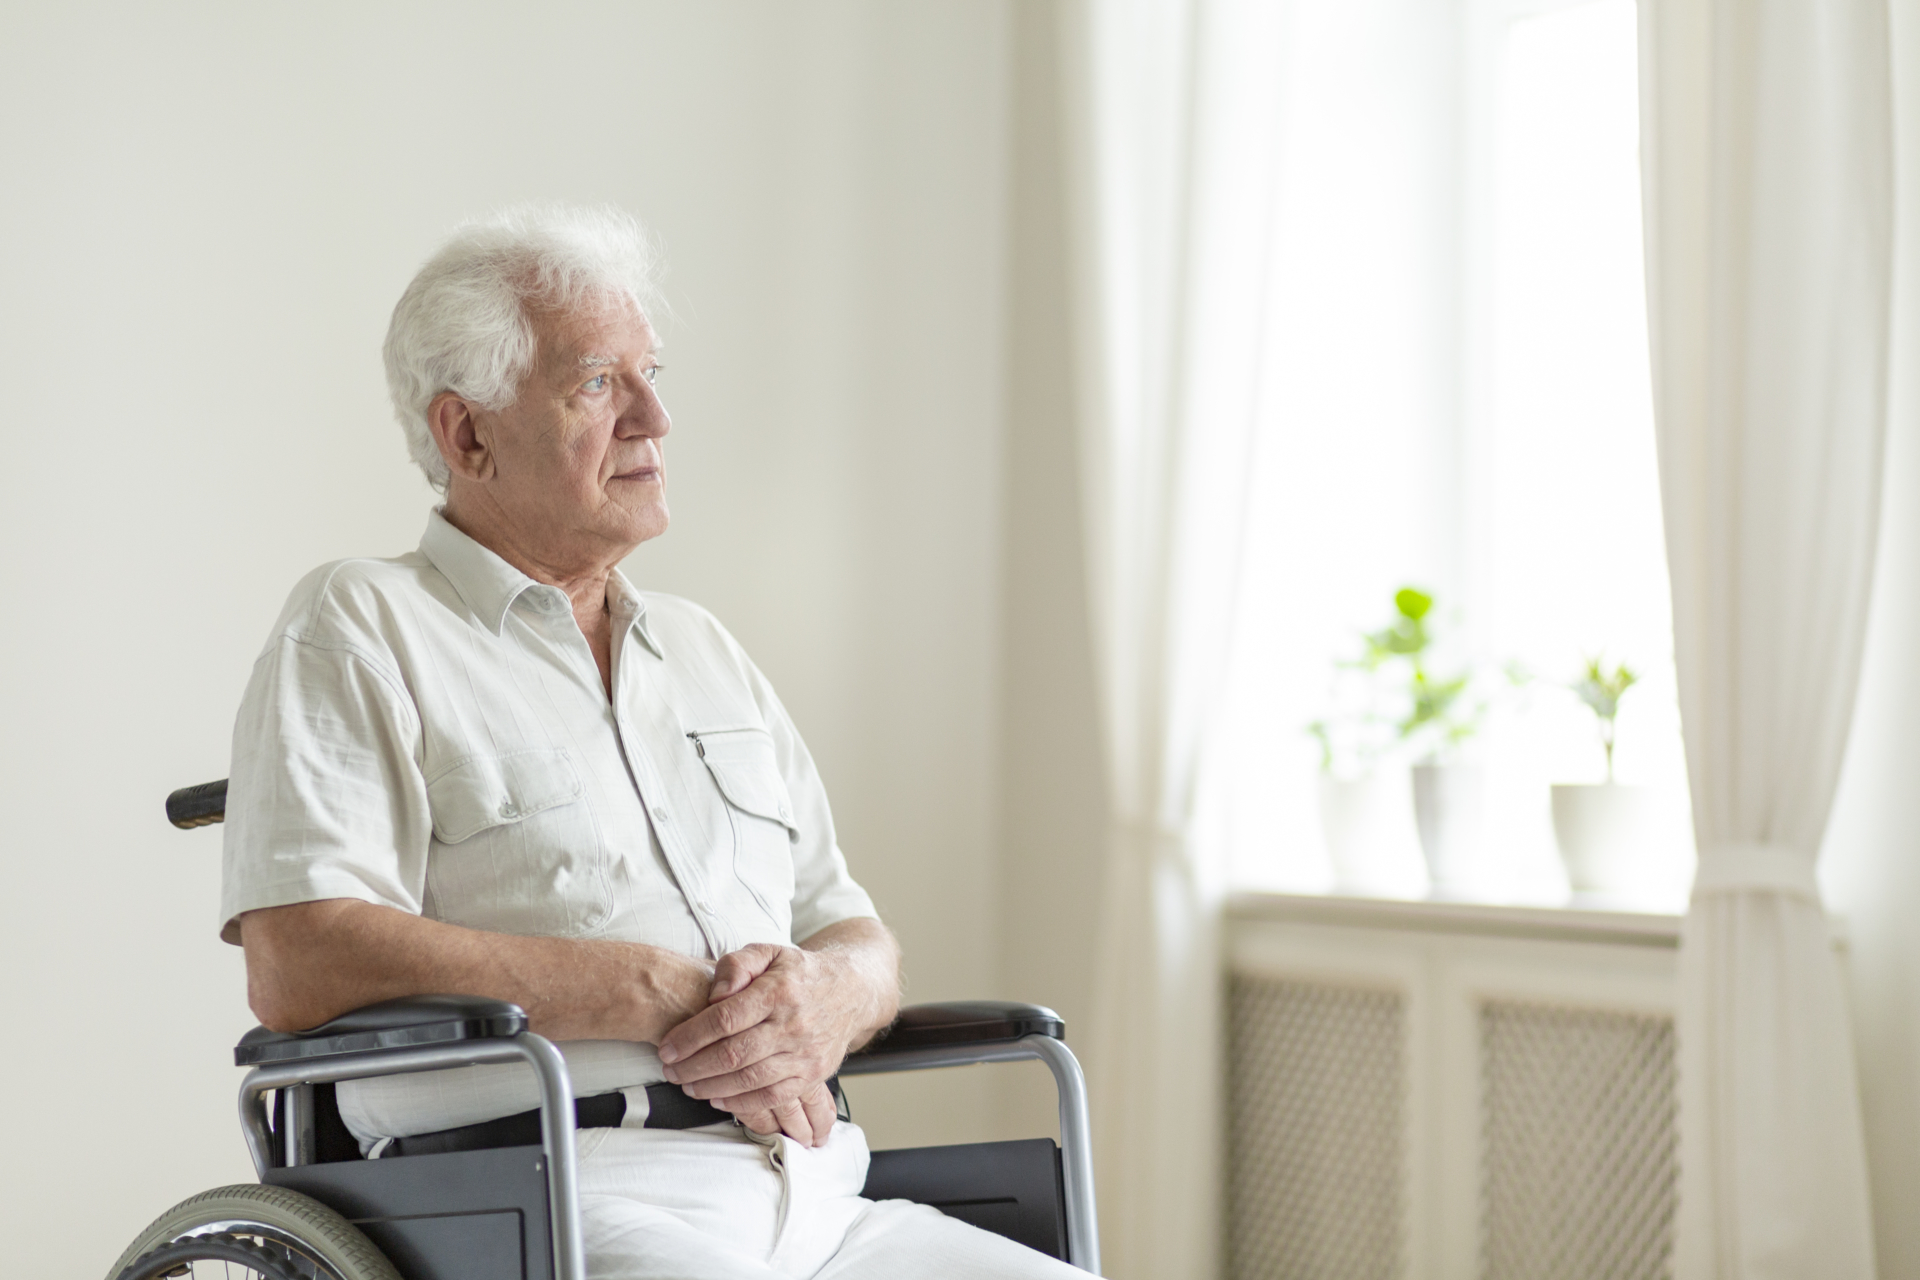 Loneliness in the elderly